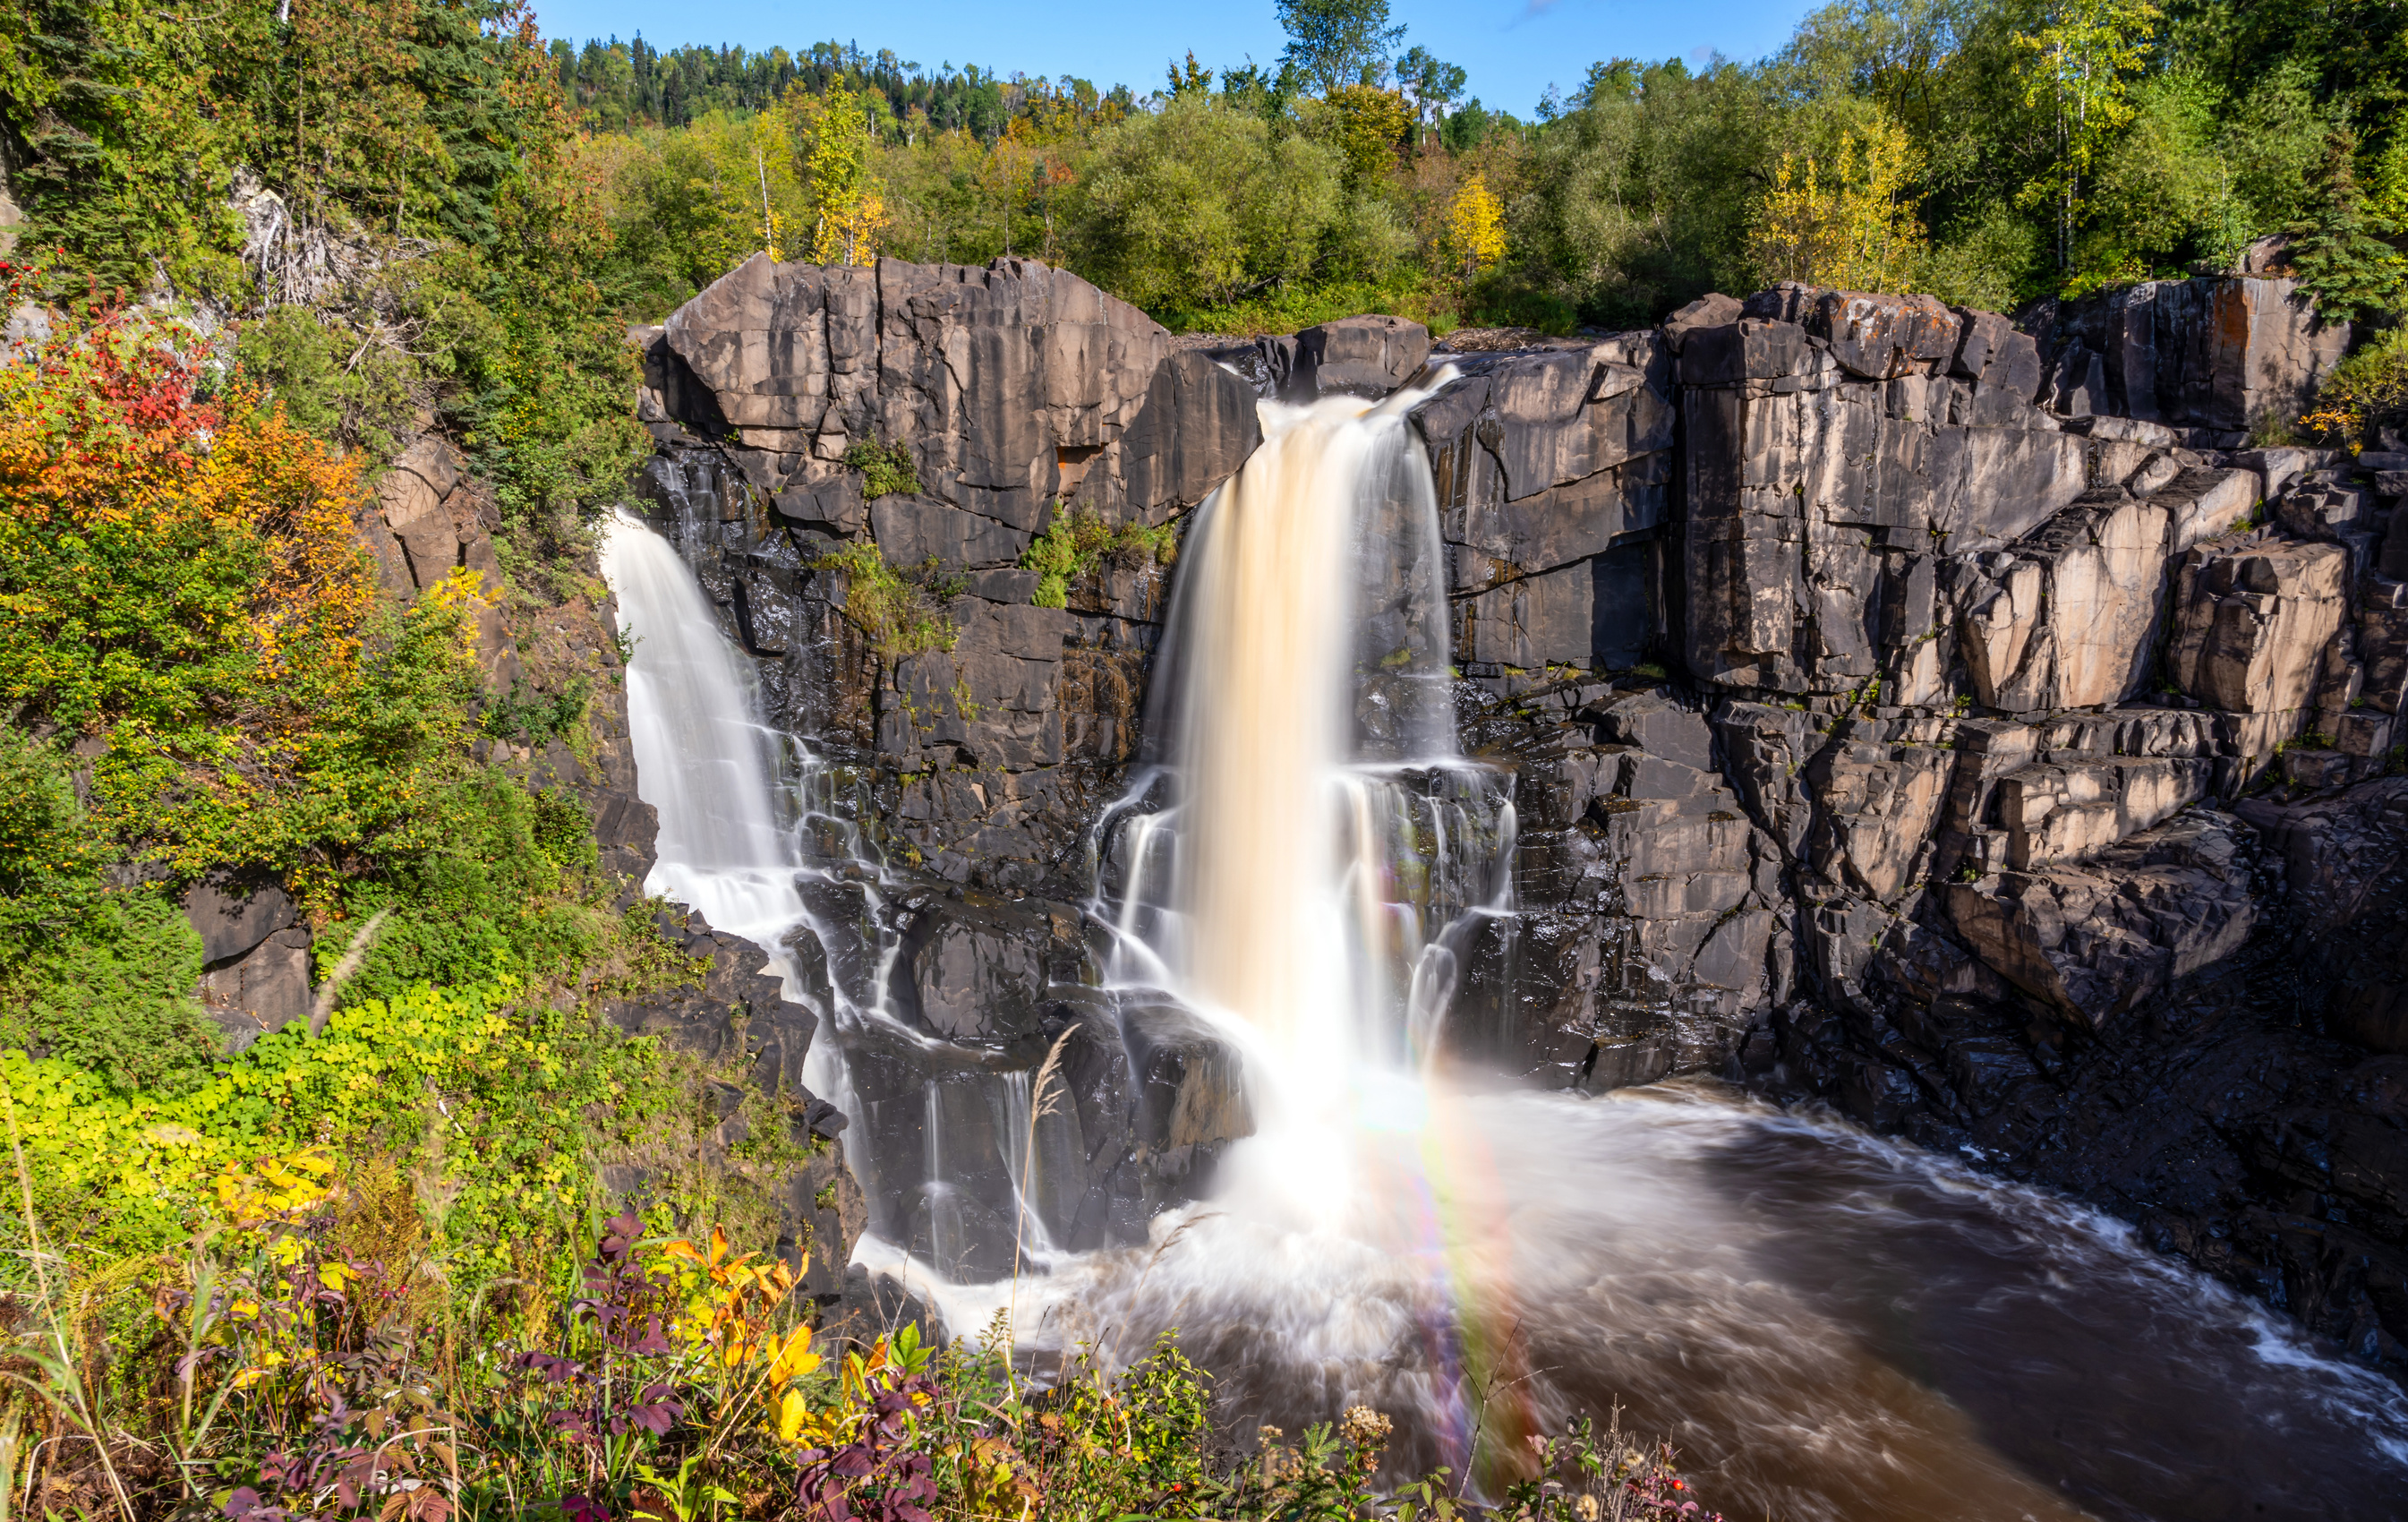 Фотография Канада Pigeon River High Falls скалы Природа Водопады 2690x1700 Утес Скала скале